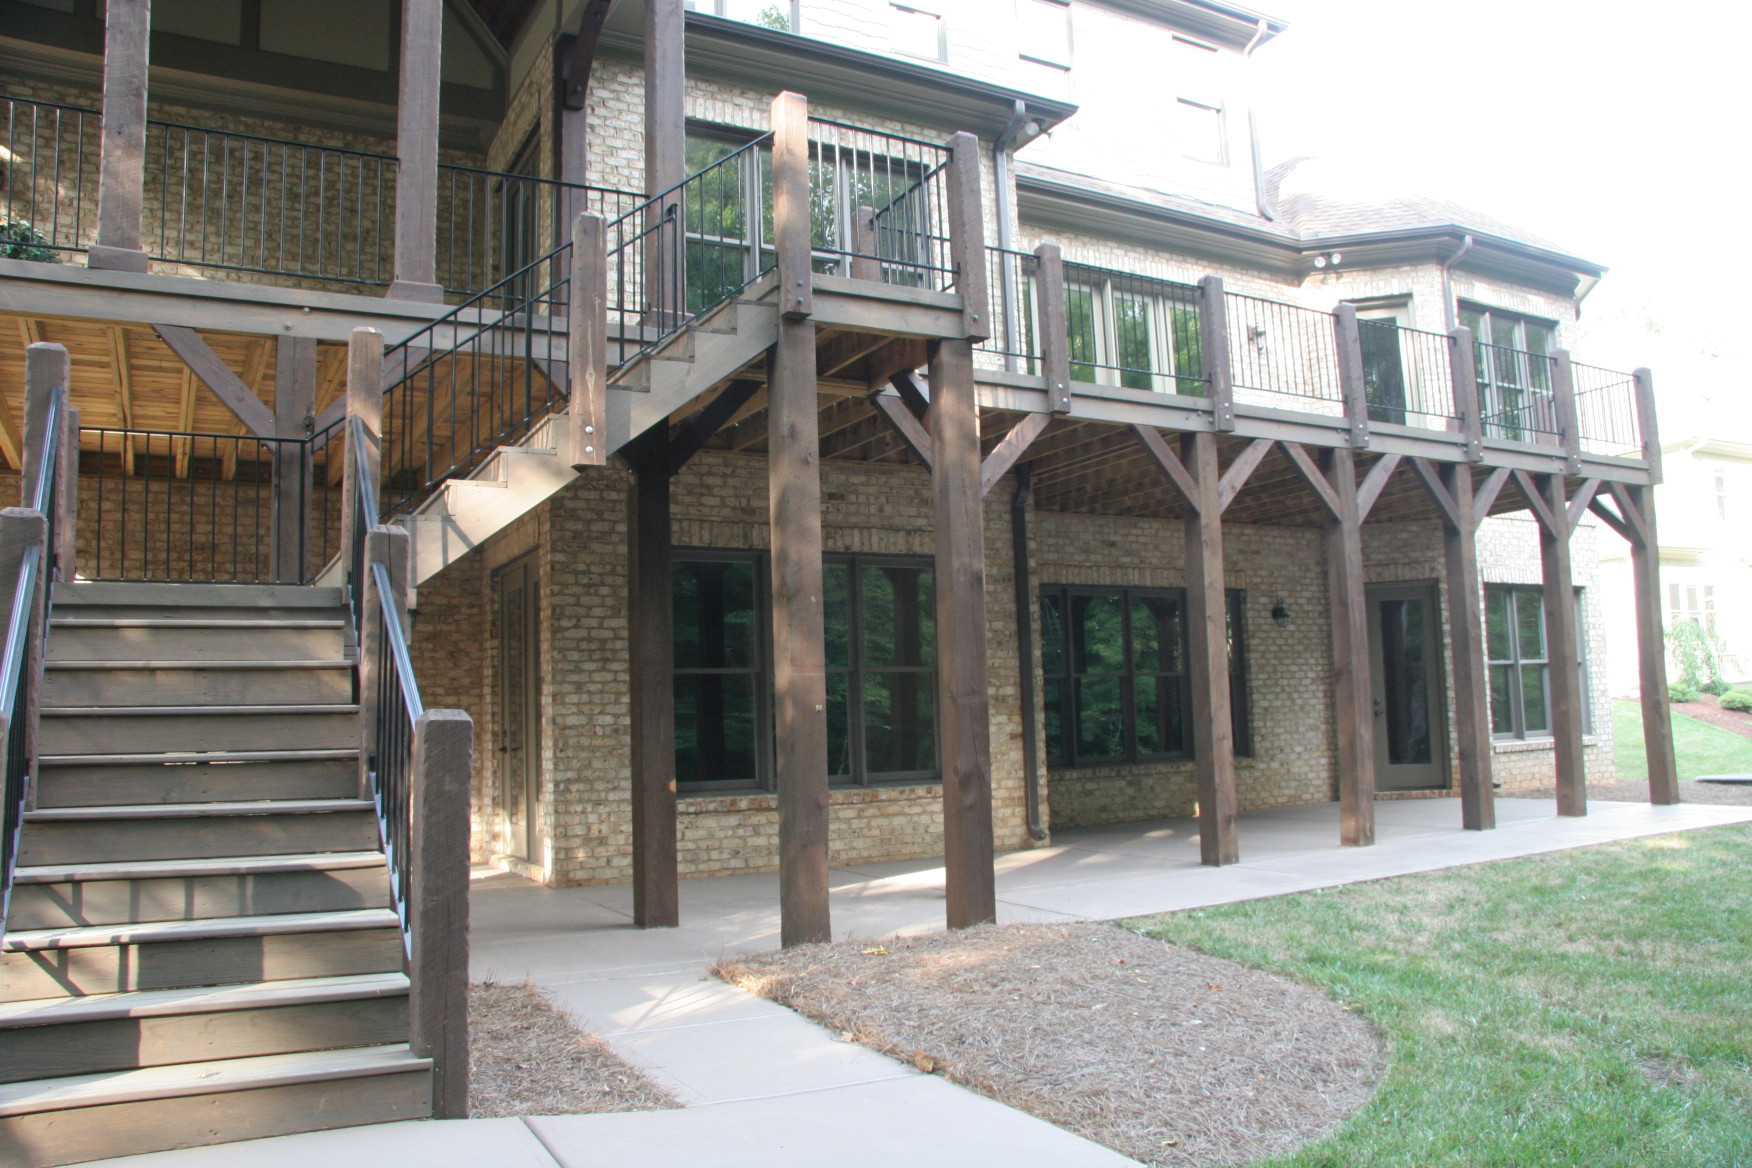 The wood posts and wood wood railing posts on this porch come together to create an Old World feel.